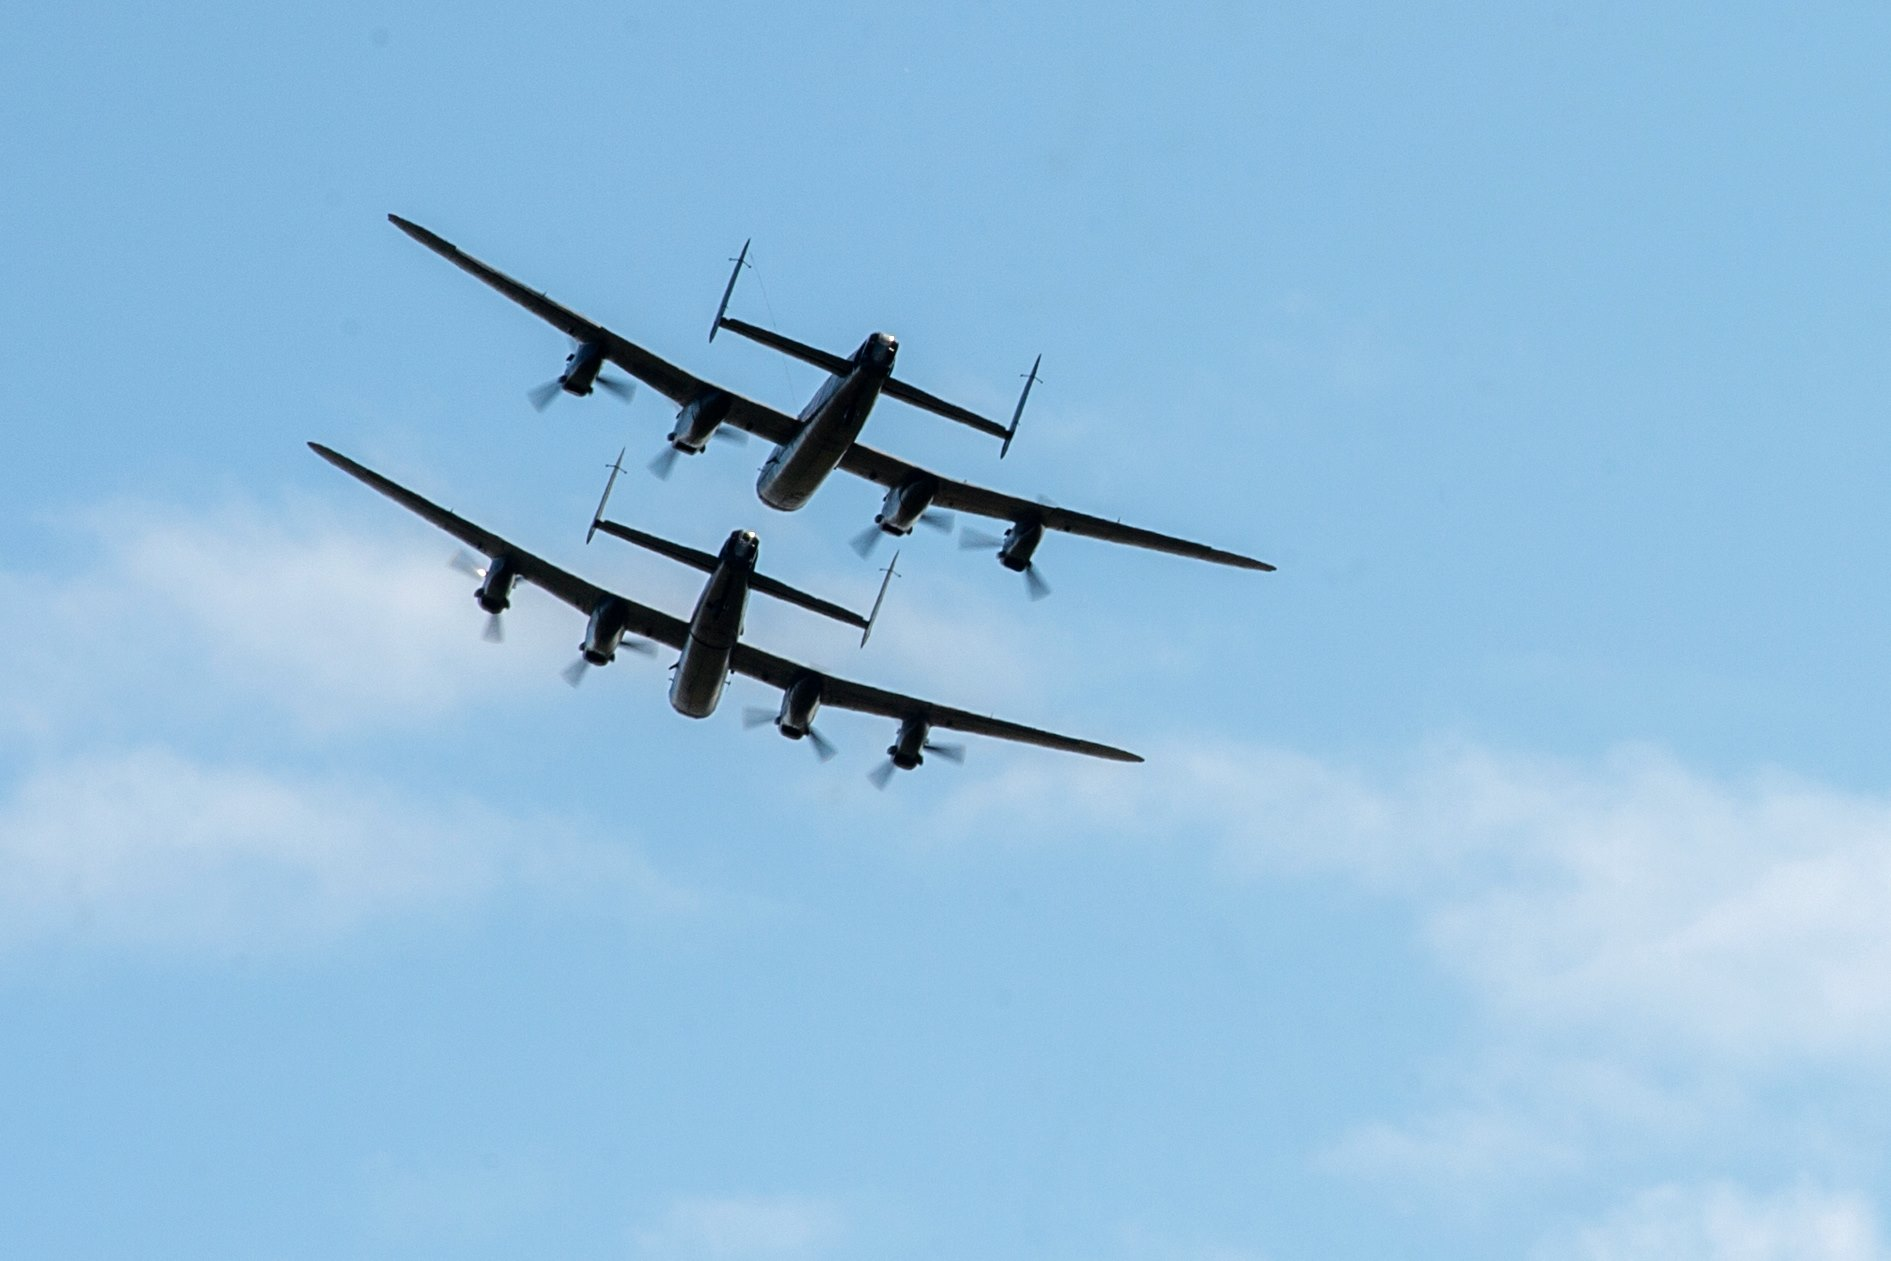 The Canadian and British Lancasters take to the skies on August 14, 2014 – the first time two Lancasters had flown together in more than 50 years. PHOTO: MoD Crown Copyright 2014